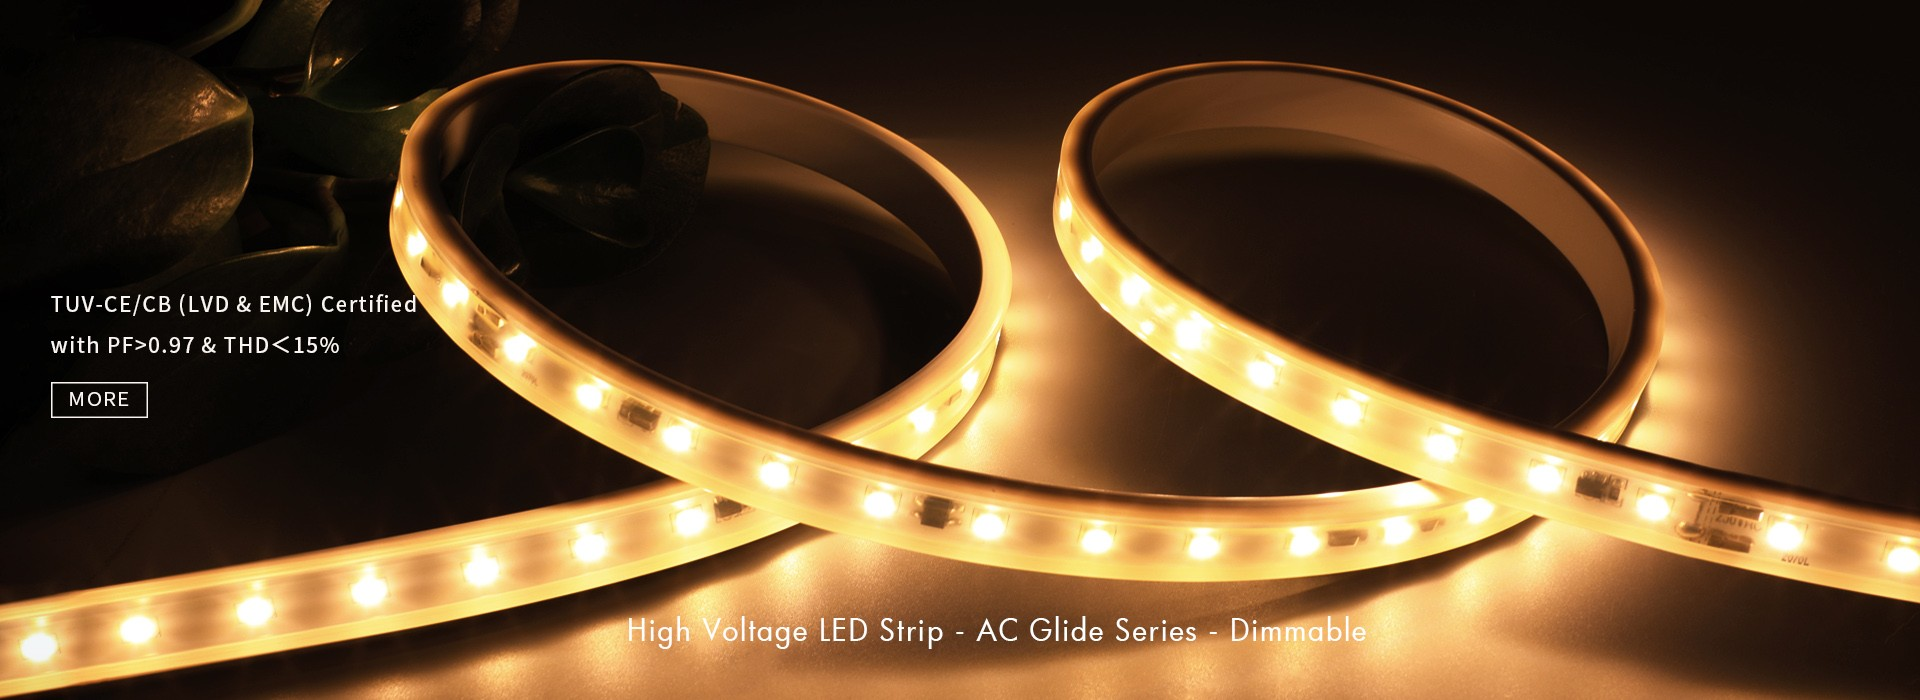 High Voltage LED Strip - AC Glide Series - Dimmable